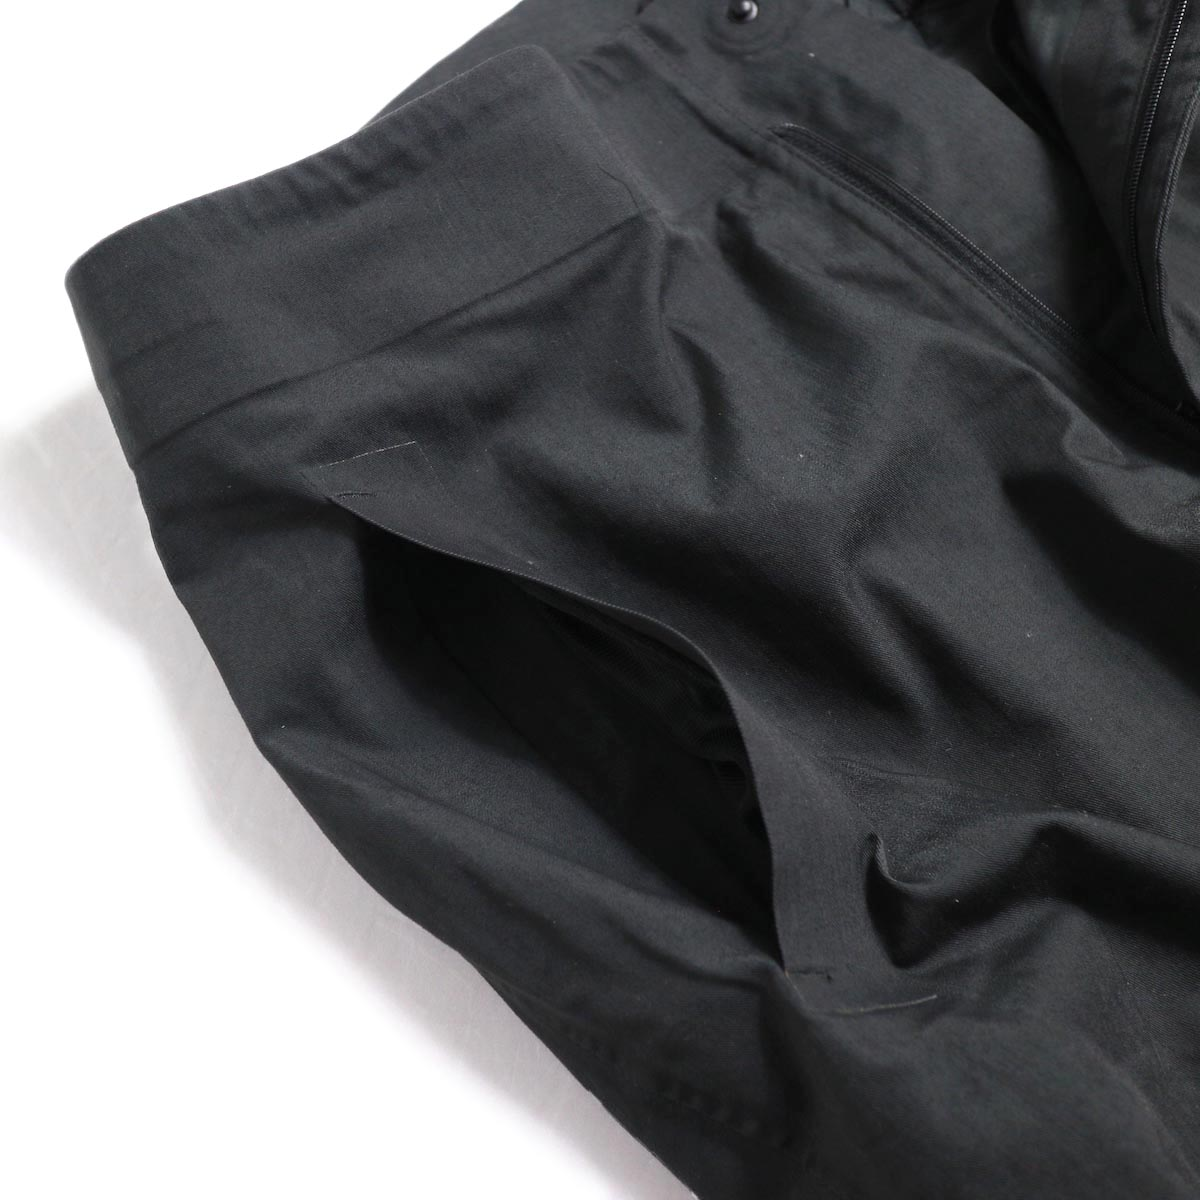 DESCENTE ALLTERAIN / Boa Long Pants Tapered Fit -Black ポケット